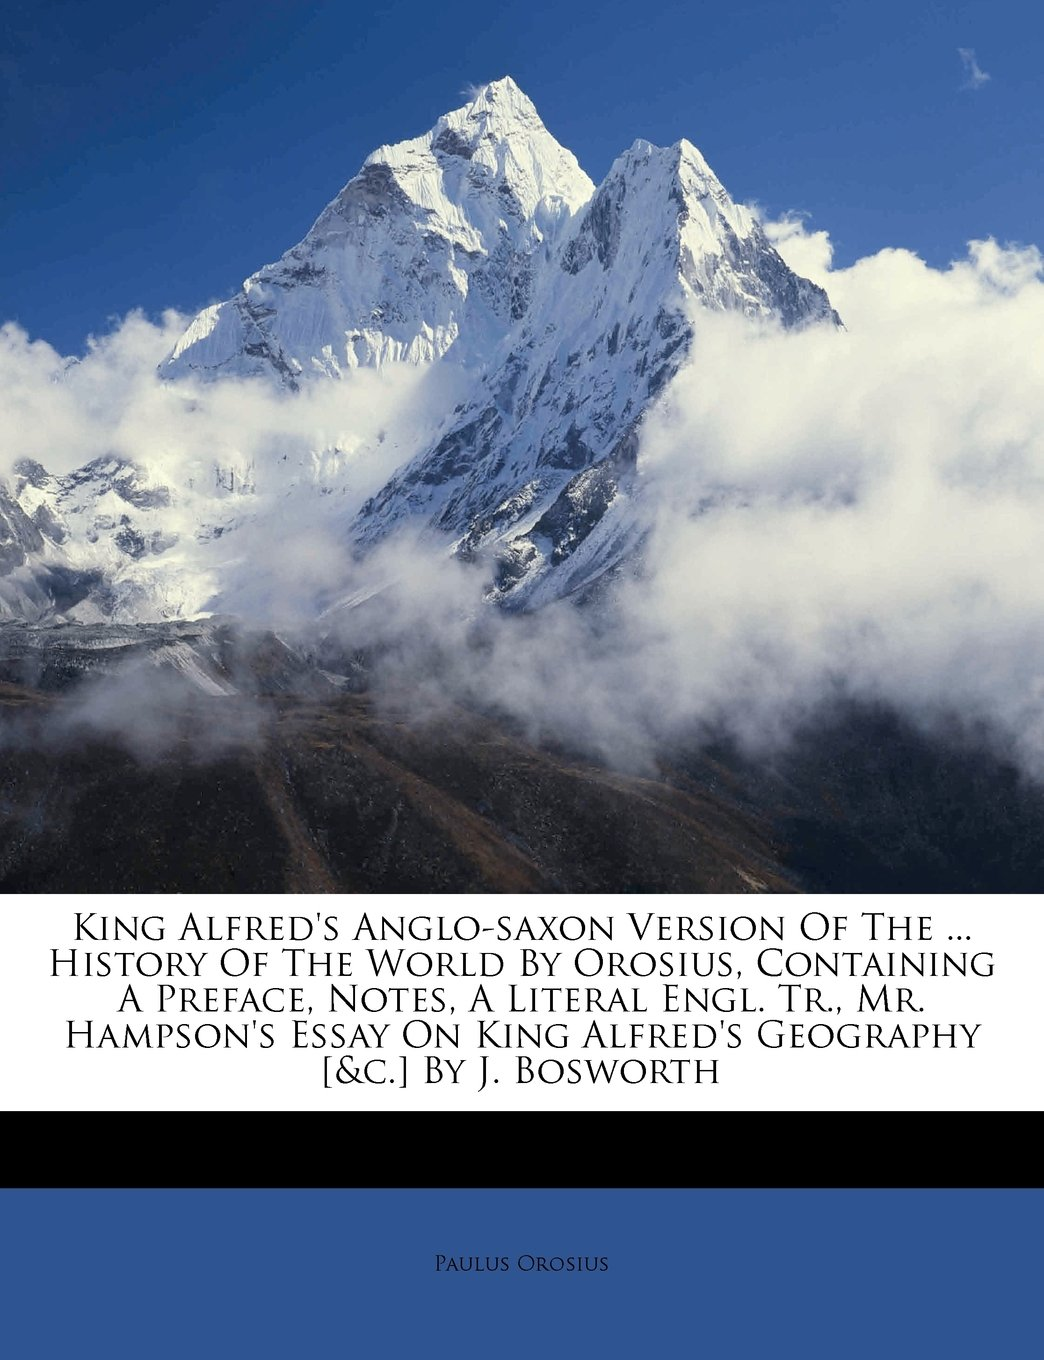 Read Online King Alfred's Anglo-saxon Version Of The ... History Of The World By Orosius, Containing A Preface, Notes, A Literal Engl. Tr., Mr. Hampson's Essay On King Alfred's Geography [&c.] By J. Bosworth PDF